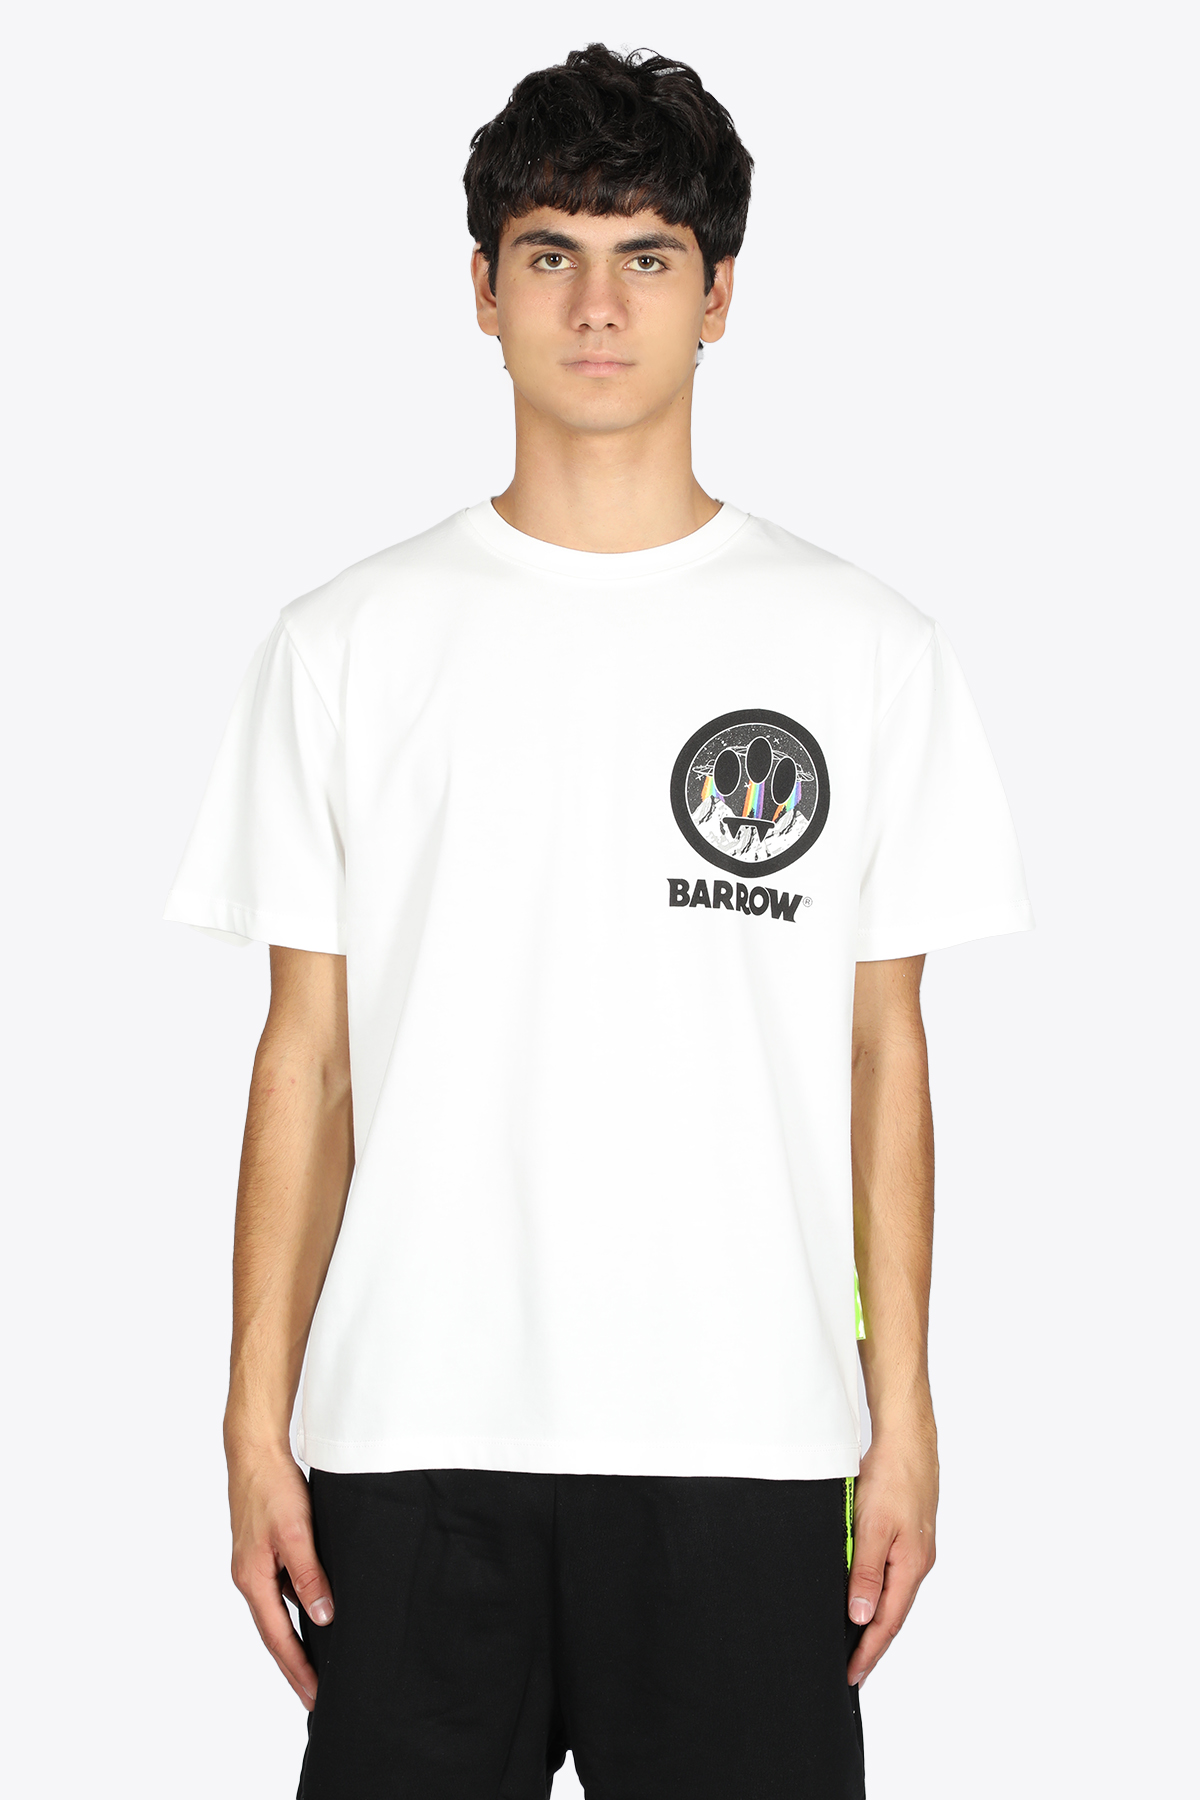 OFF-WHITE COTTON TEE WITH SMILE PRINT BARROW | 8 | 029922 JERSEY T-SHIRT002